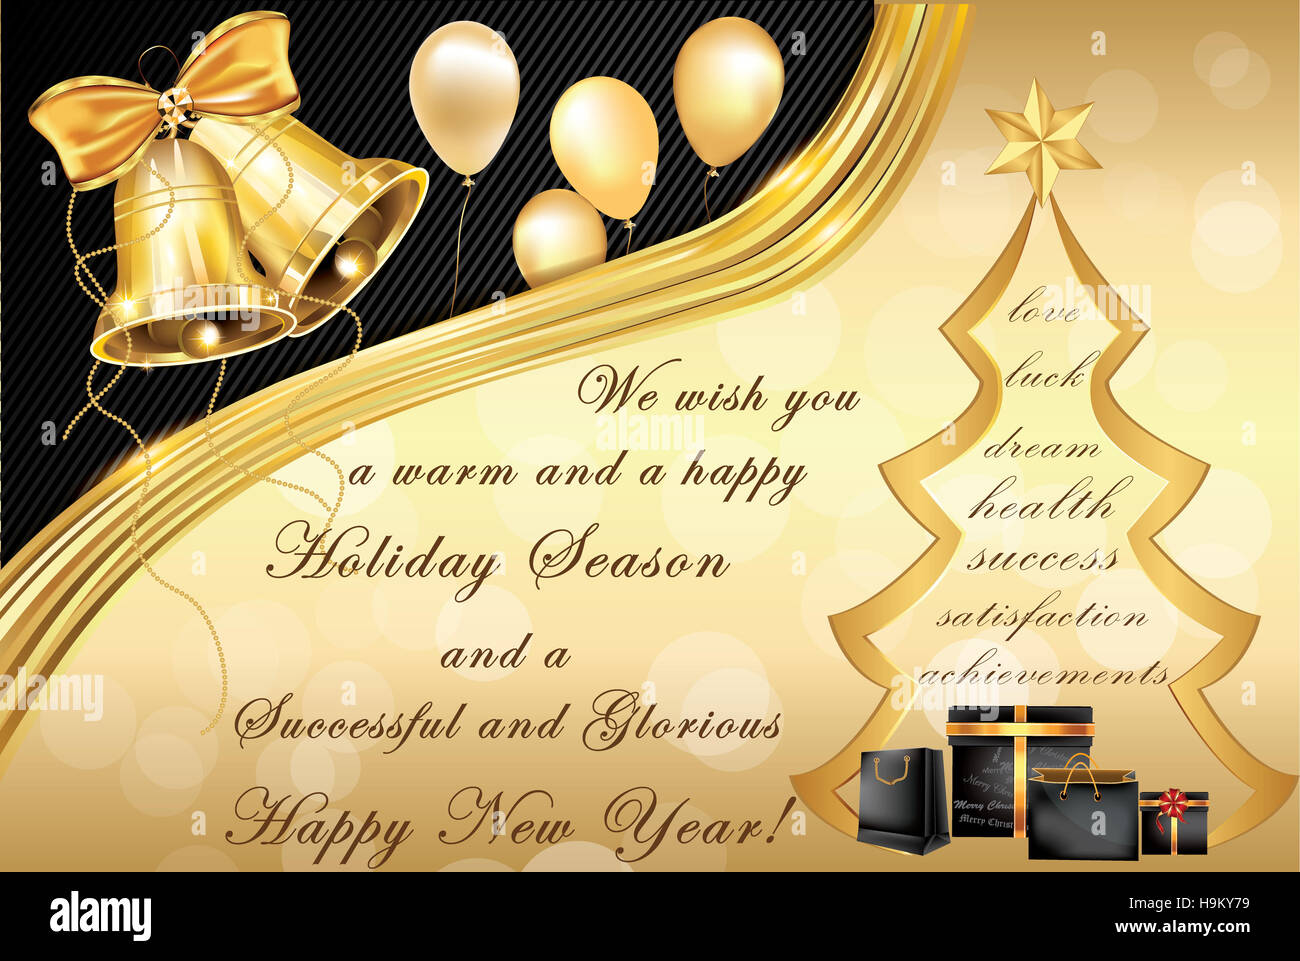 elegant corporate christmas and new year greeting card contains jingle bells christmas tree gifts and warm wishes for winter